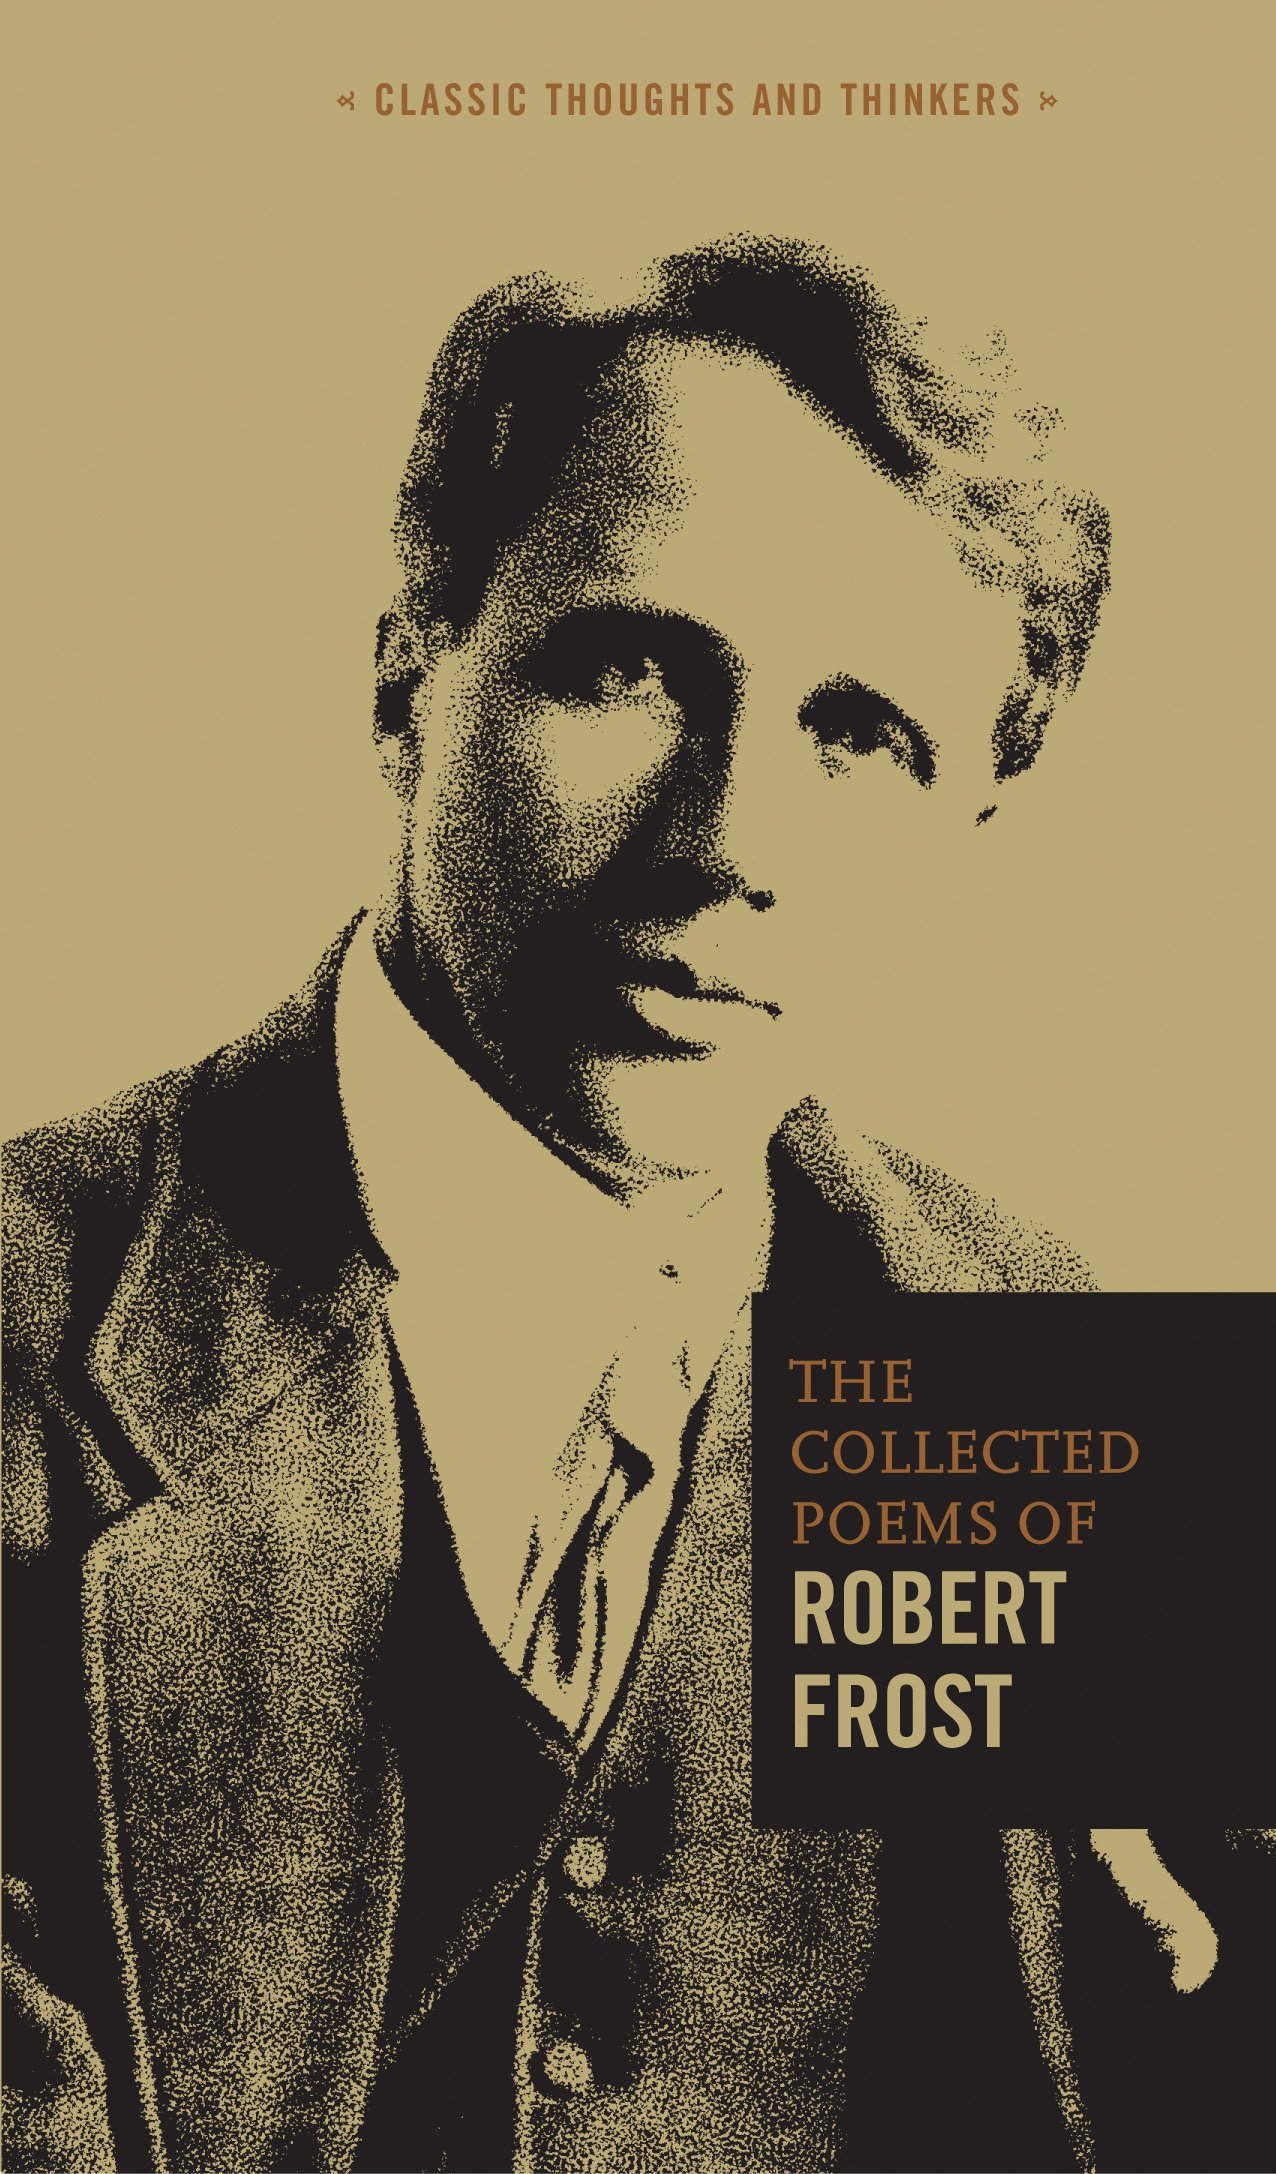 The Collected Poems of Robert Frost (Classic Thoughts and Thinkers) pdf epub